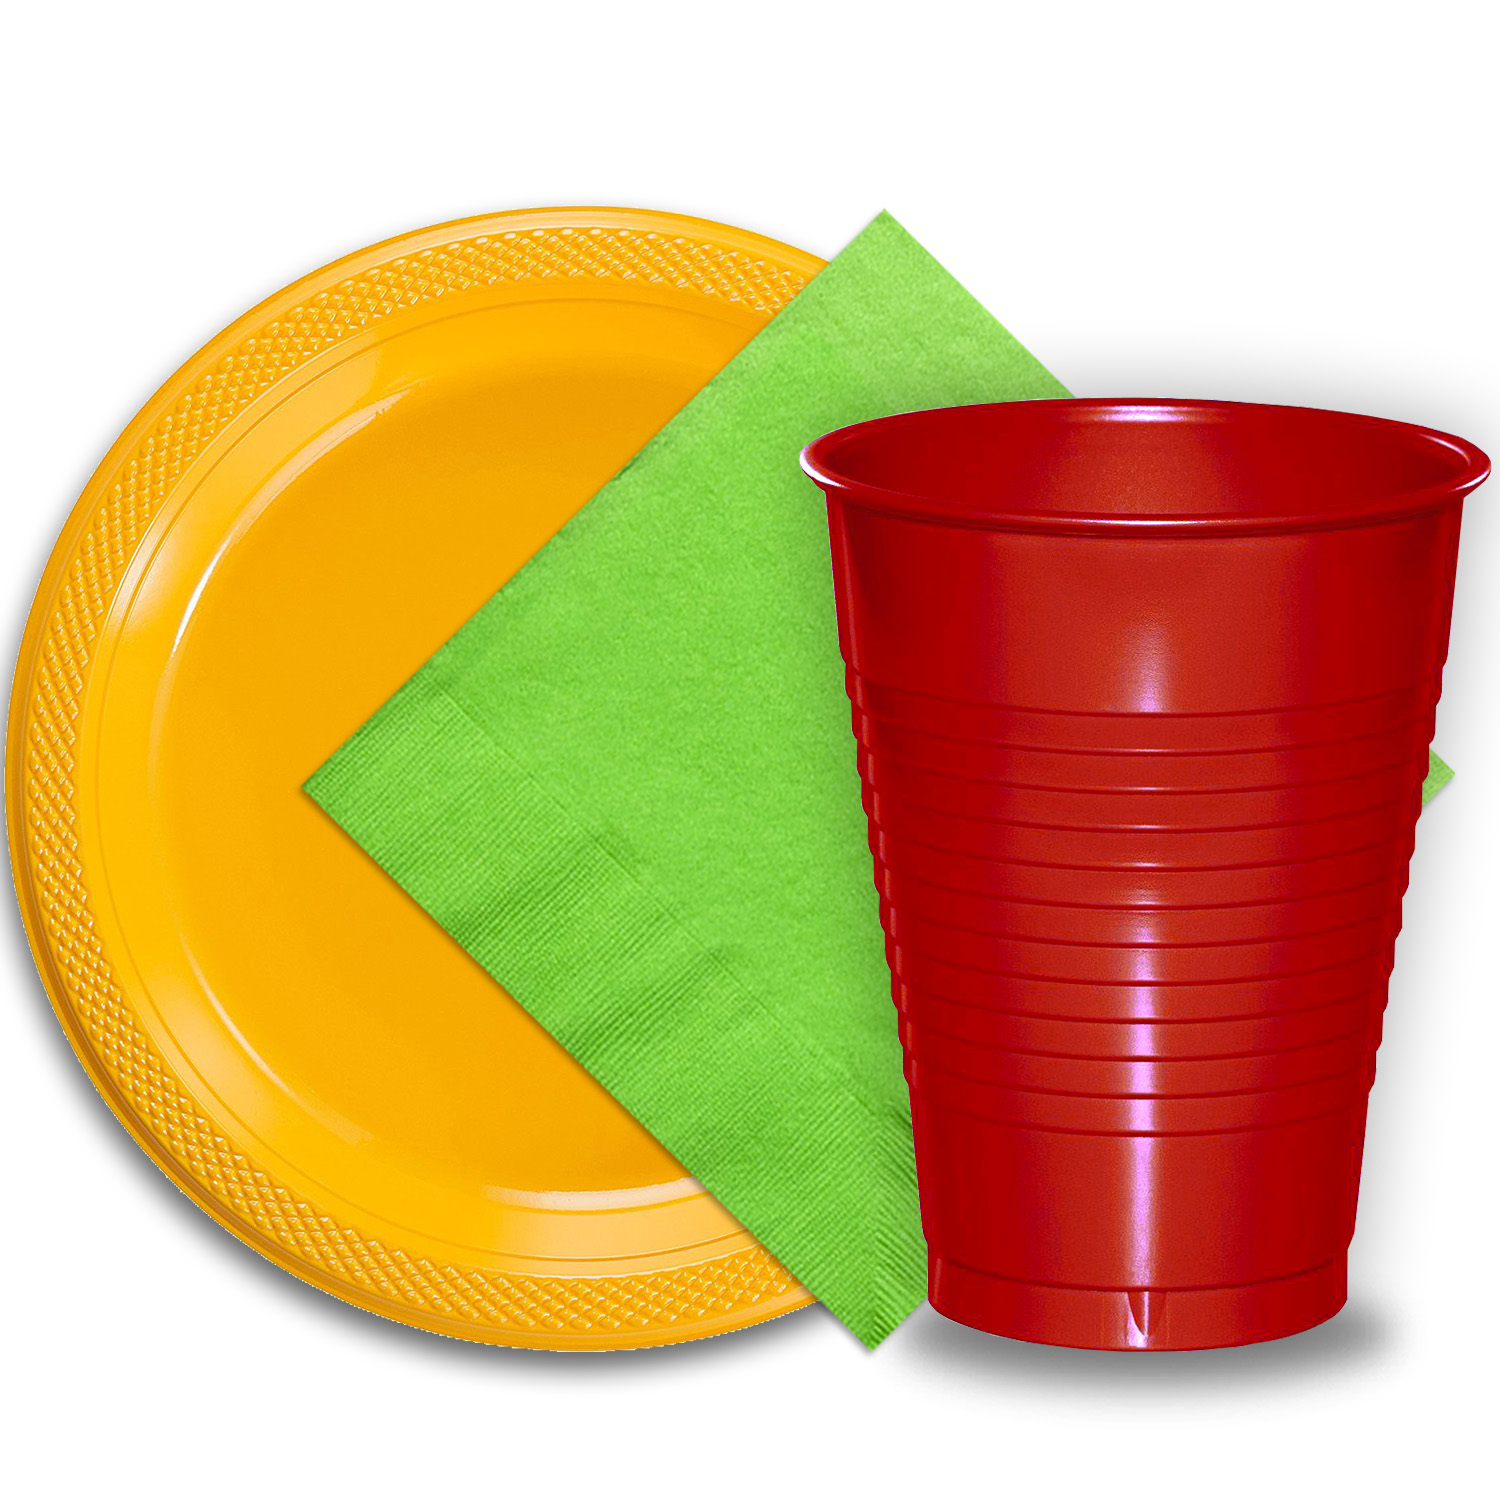 """50 Yellow Plastic Plates (9""""), 50 Red Plastic Cups (12 oz.), and 50 Lime Green Paper Napkins, Dazzelling Colored Disposable Party Supplies Tableware Set for Fifty Guests."""